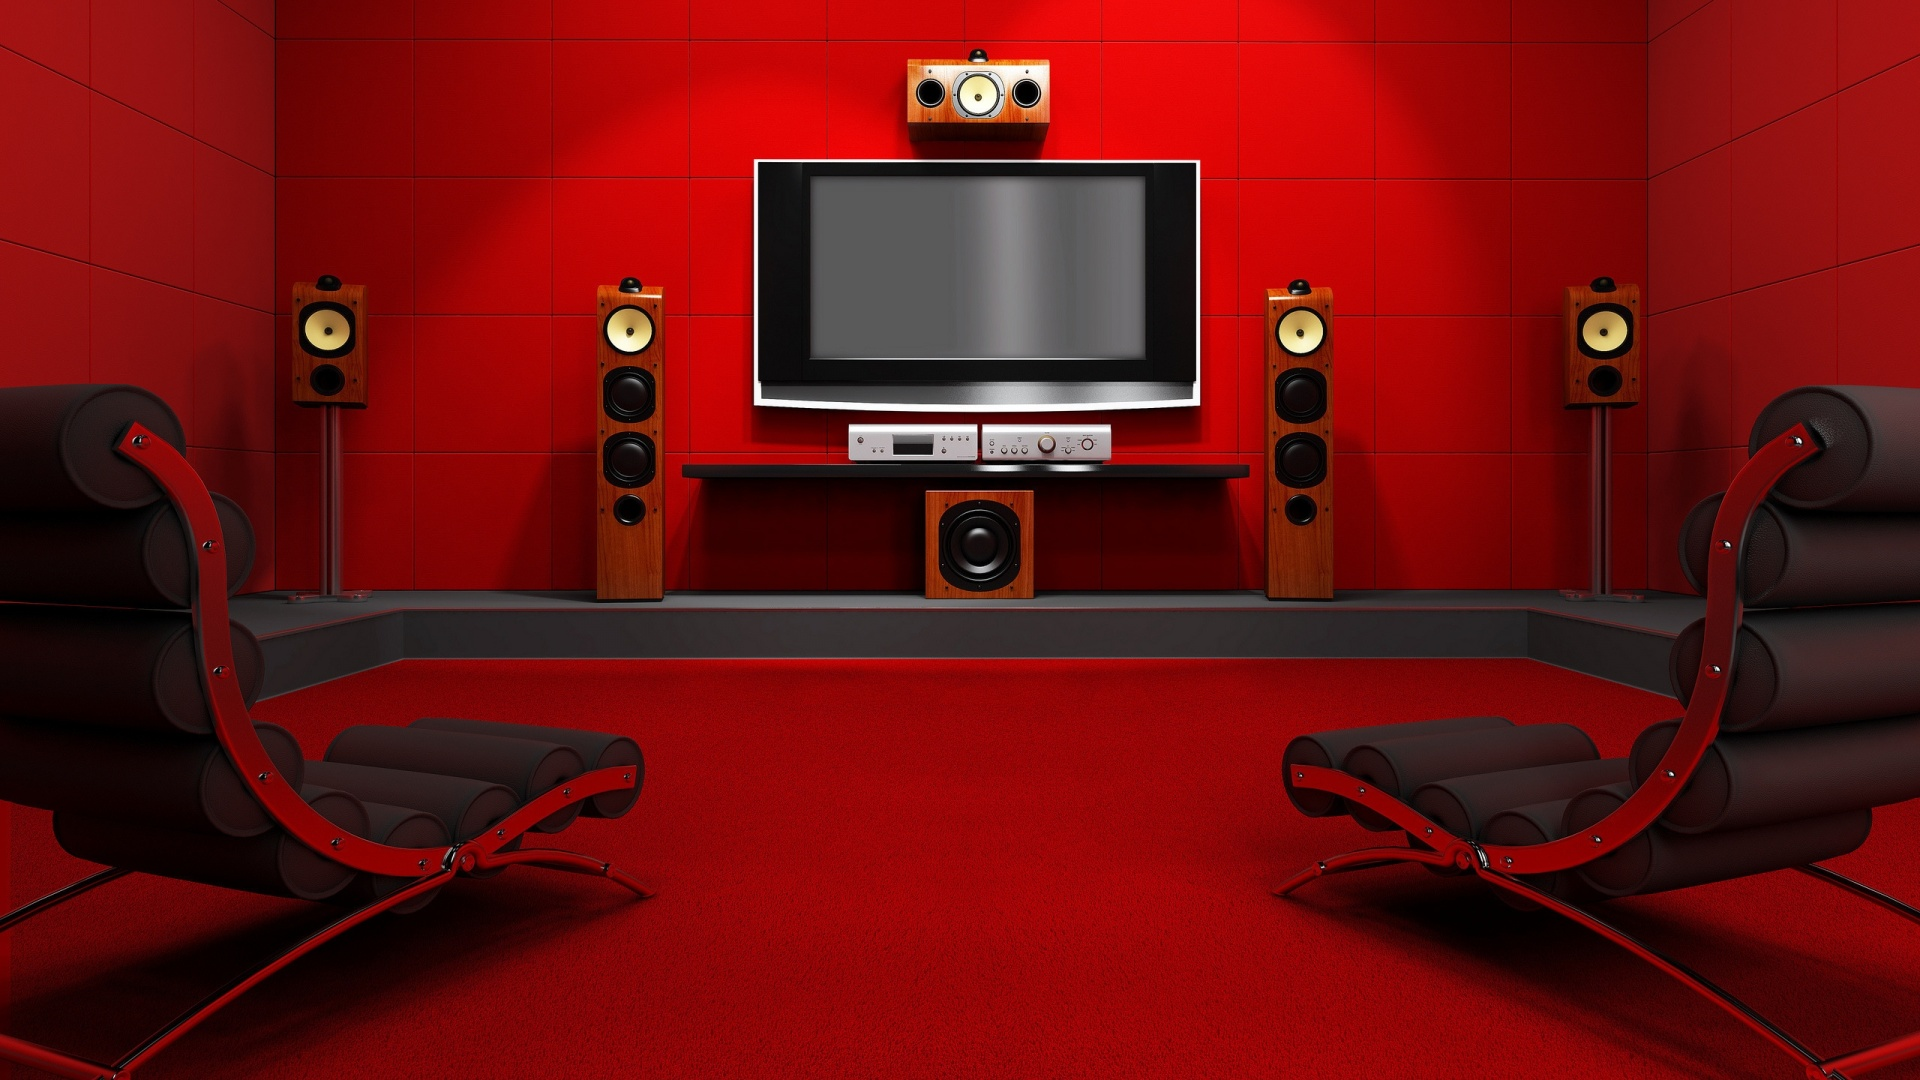 1920x1080 Red Room desktop PC and Mac wallpaper